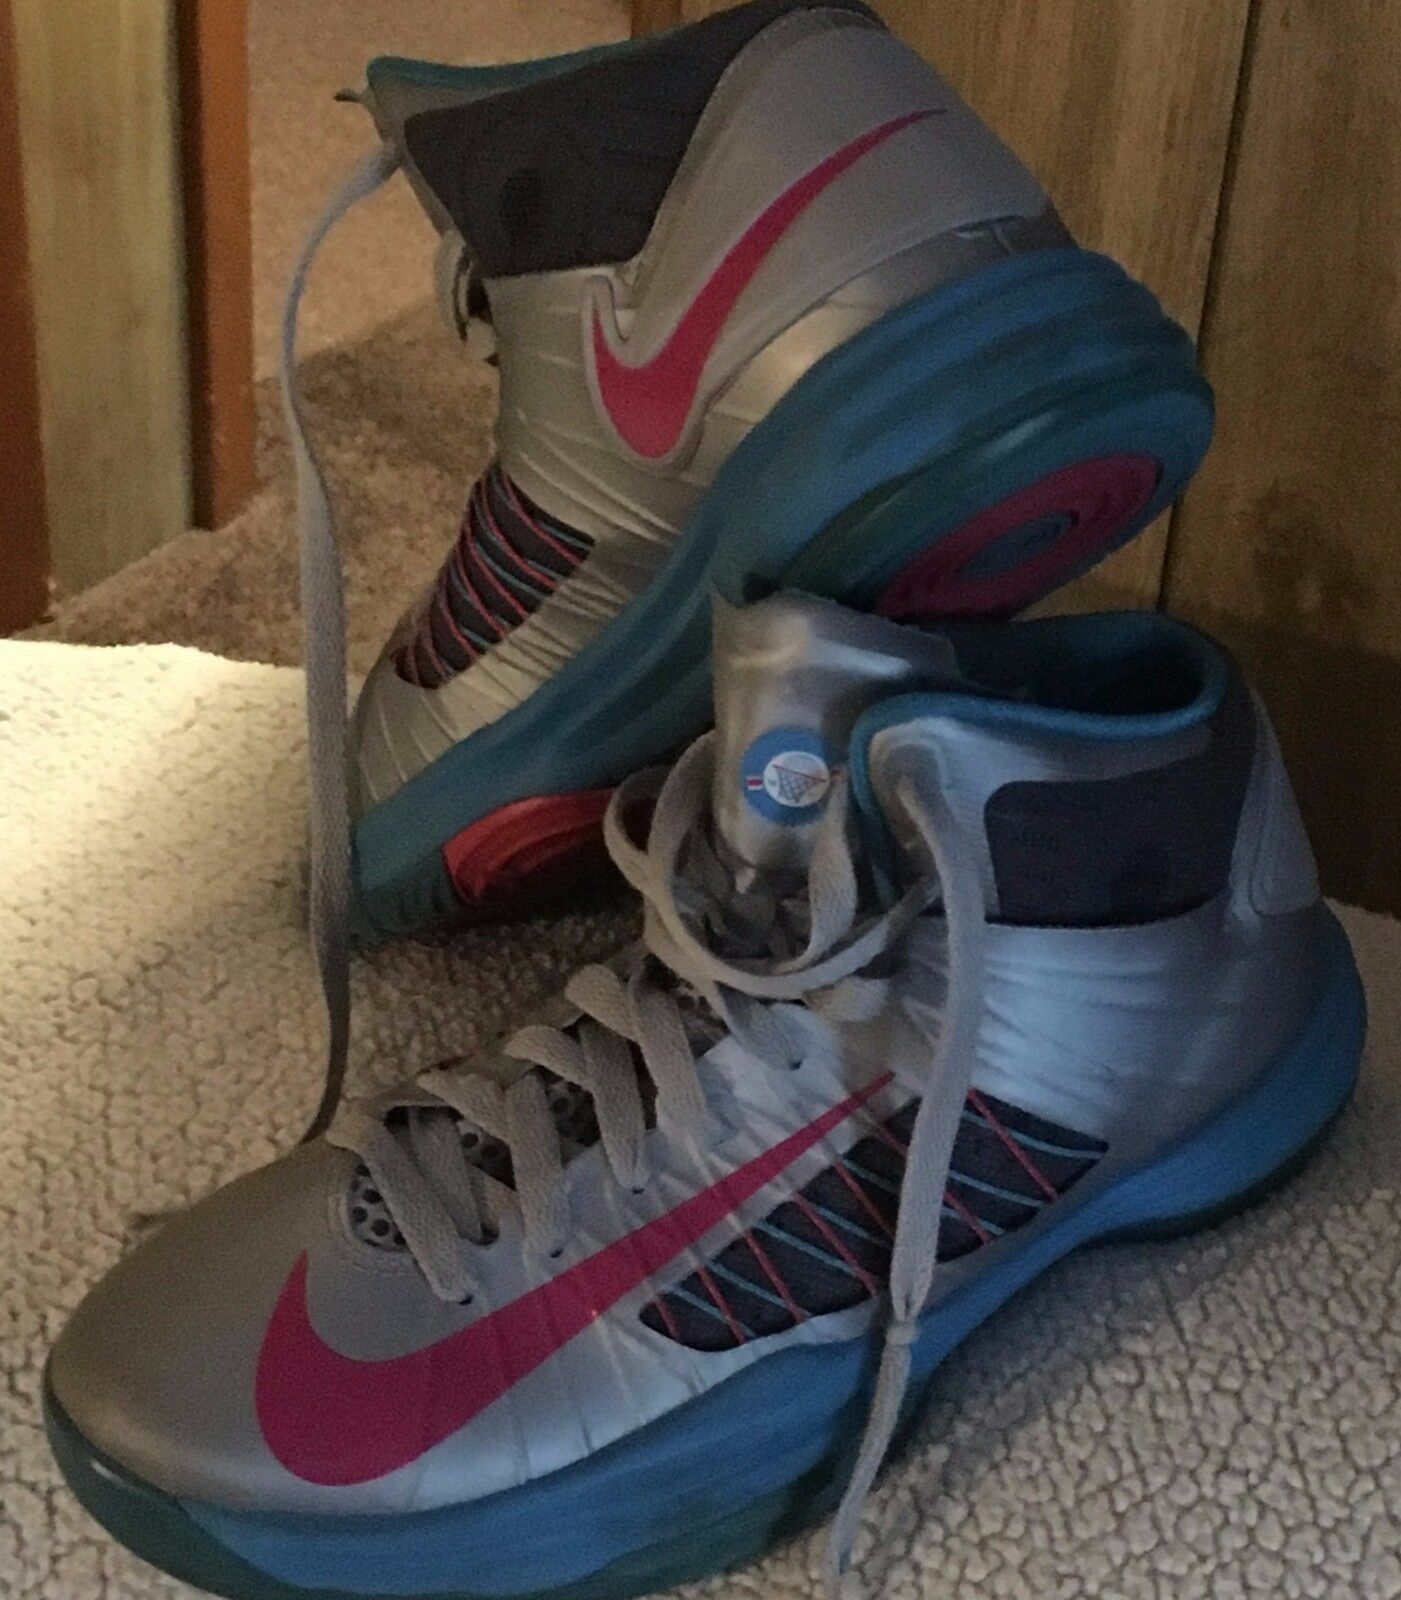 Nike 2012 Hyperdunk pink & Silver Basketball shoes, Sz 6 youth